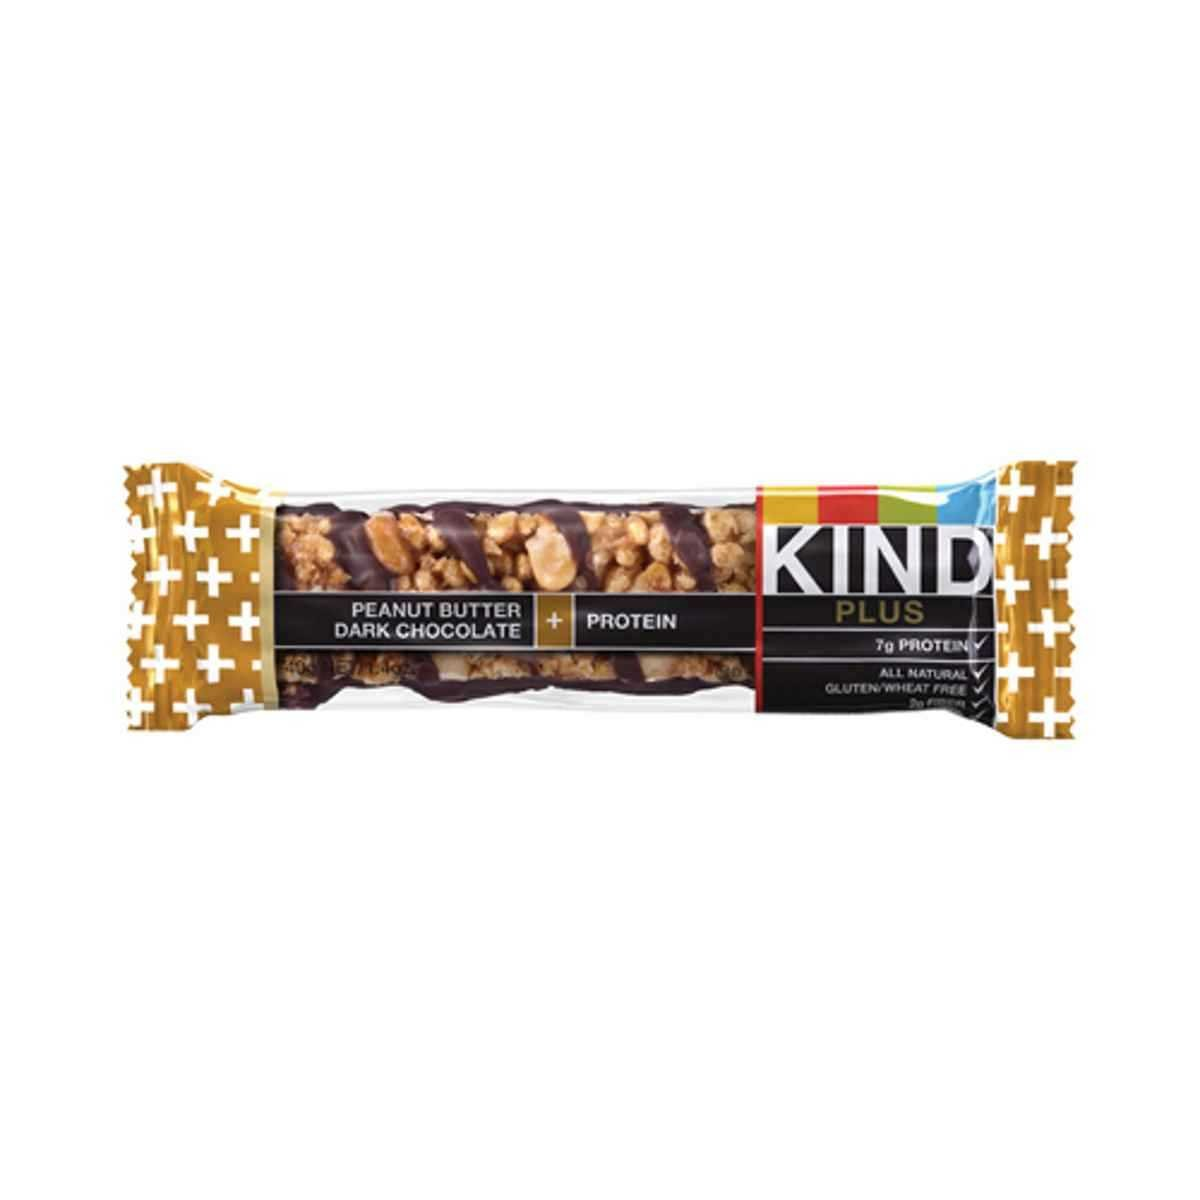 KIND Plus Nutrition Bars peanut butter